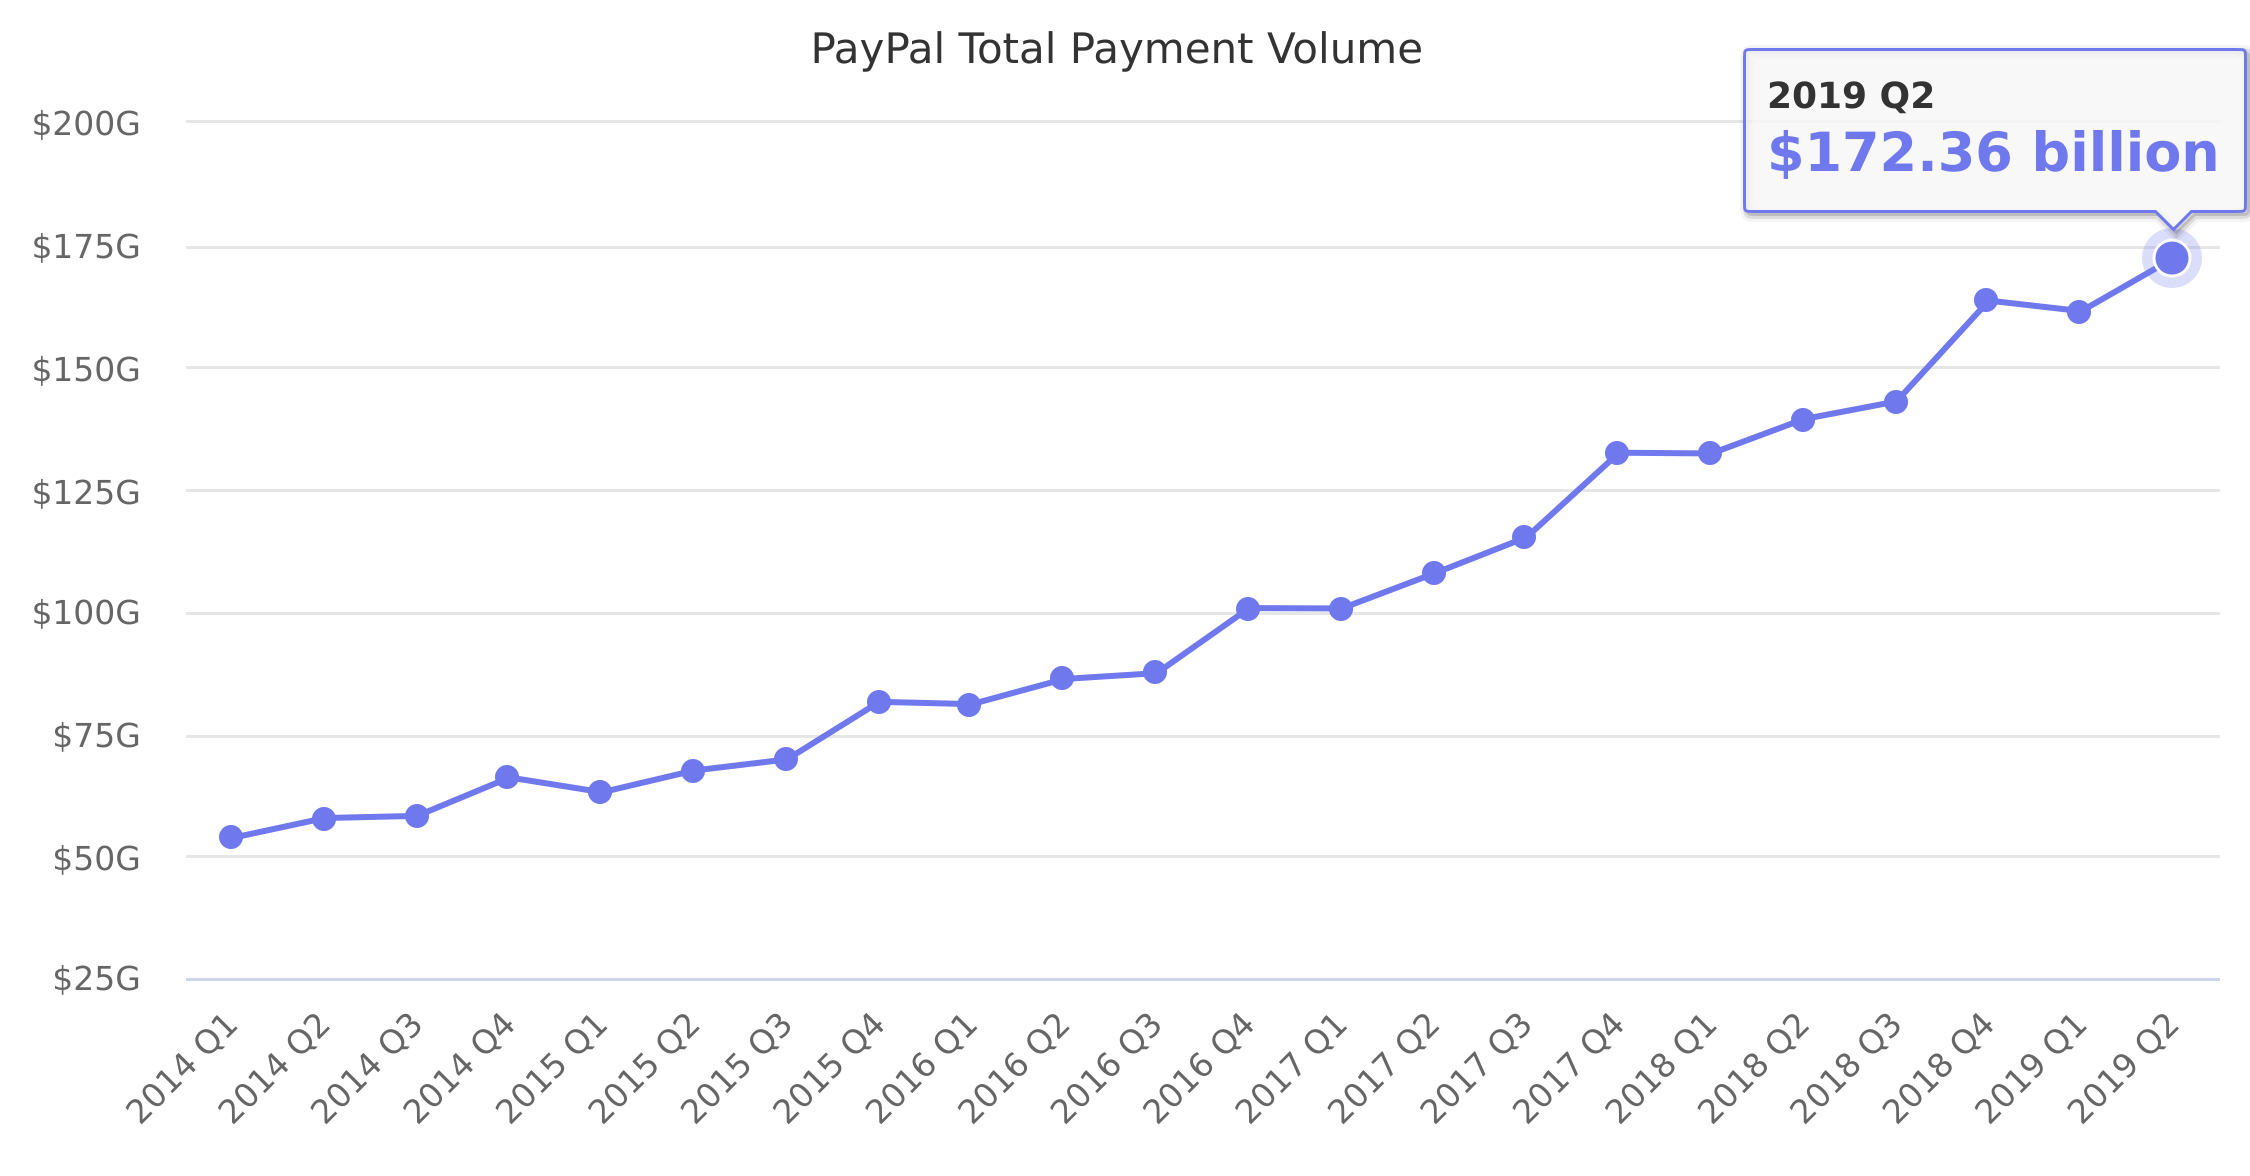 PayPal Total Payment Volume 2014-2018